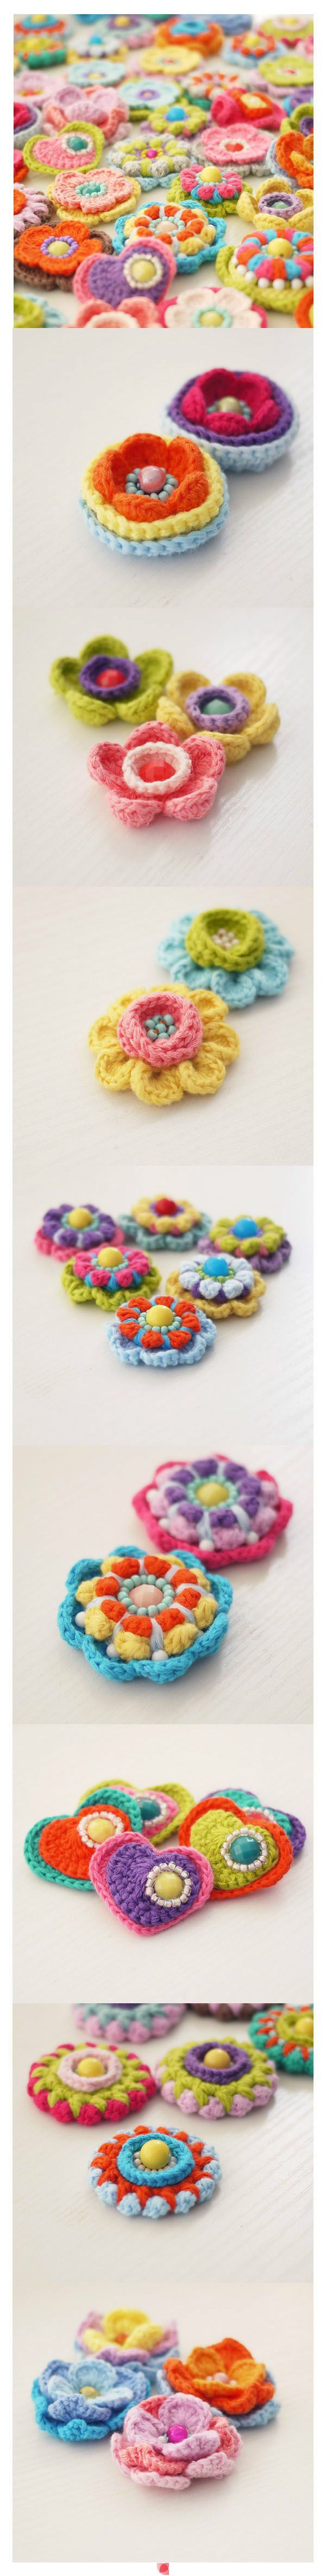 Crochet flowers for brouche